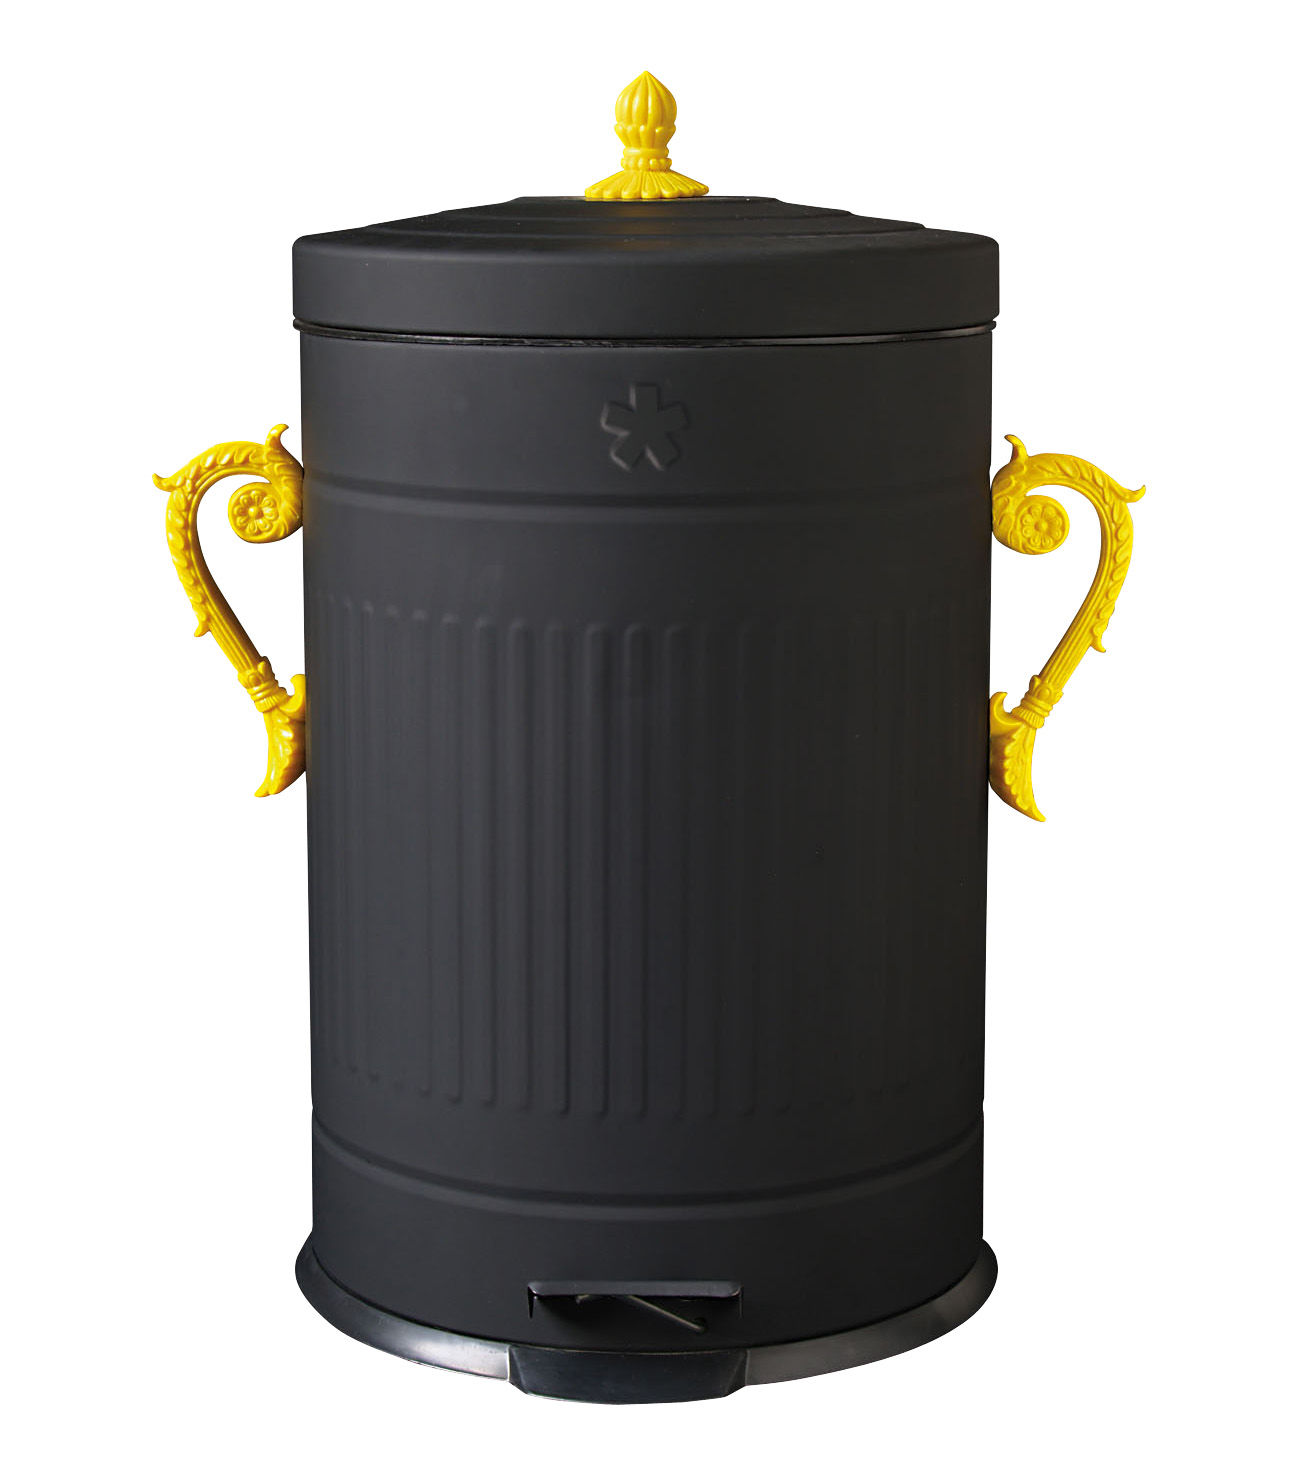 trash chic bin dustbin black yellow handles by seletti. Black Bedroom Furniture Sets. Home Design Ideas